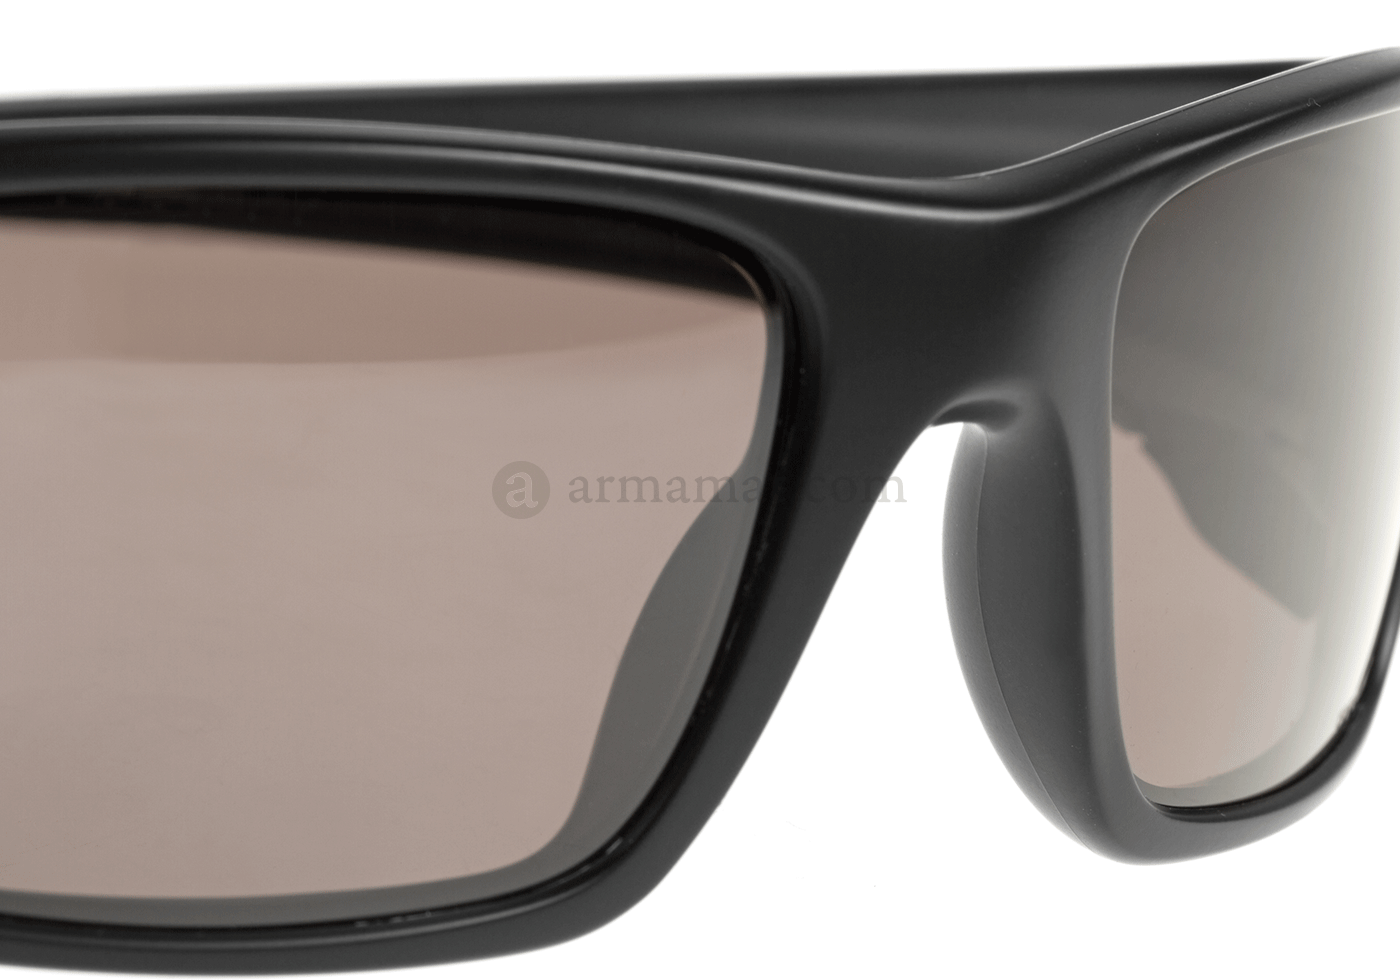 427354b97e SI Fuel Cell Apocalypse Surf Prizm Polarized Black (Oakley) - Glasses  Polarized - Eyewear - Protective Equipment - armamat.com Online shop